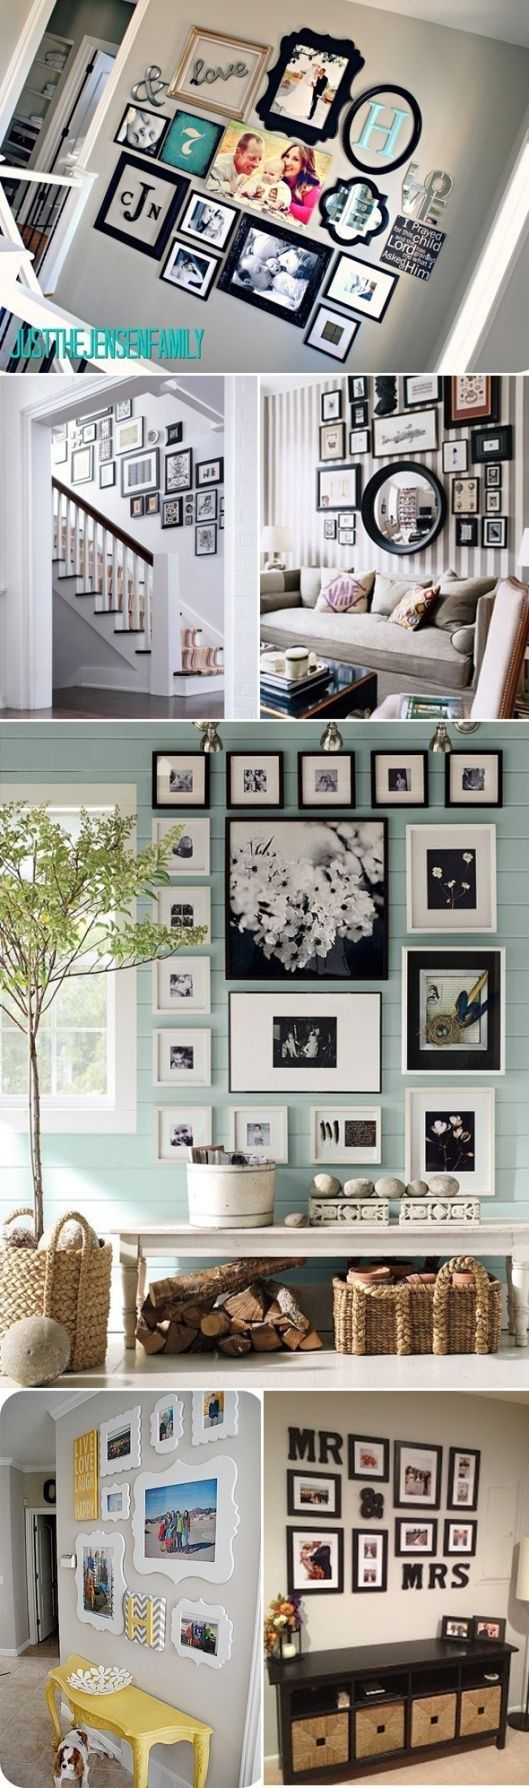 Picture frame arrangement. Like 1 and 3. Adding other pieces like an initial, vows graphic etc would make it larger...